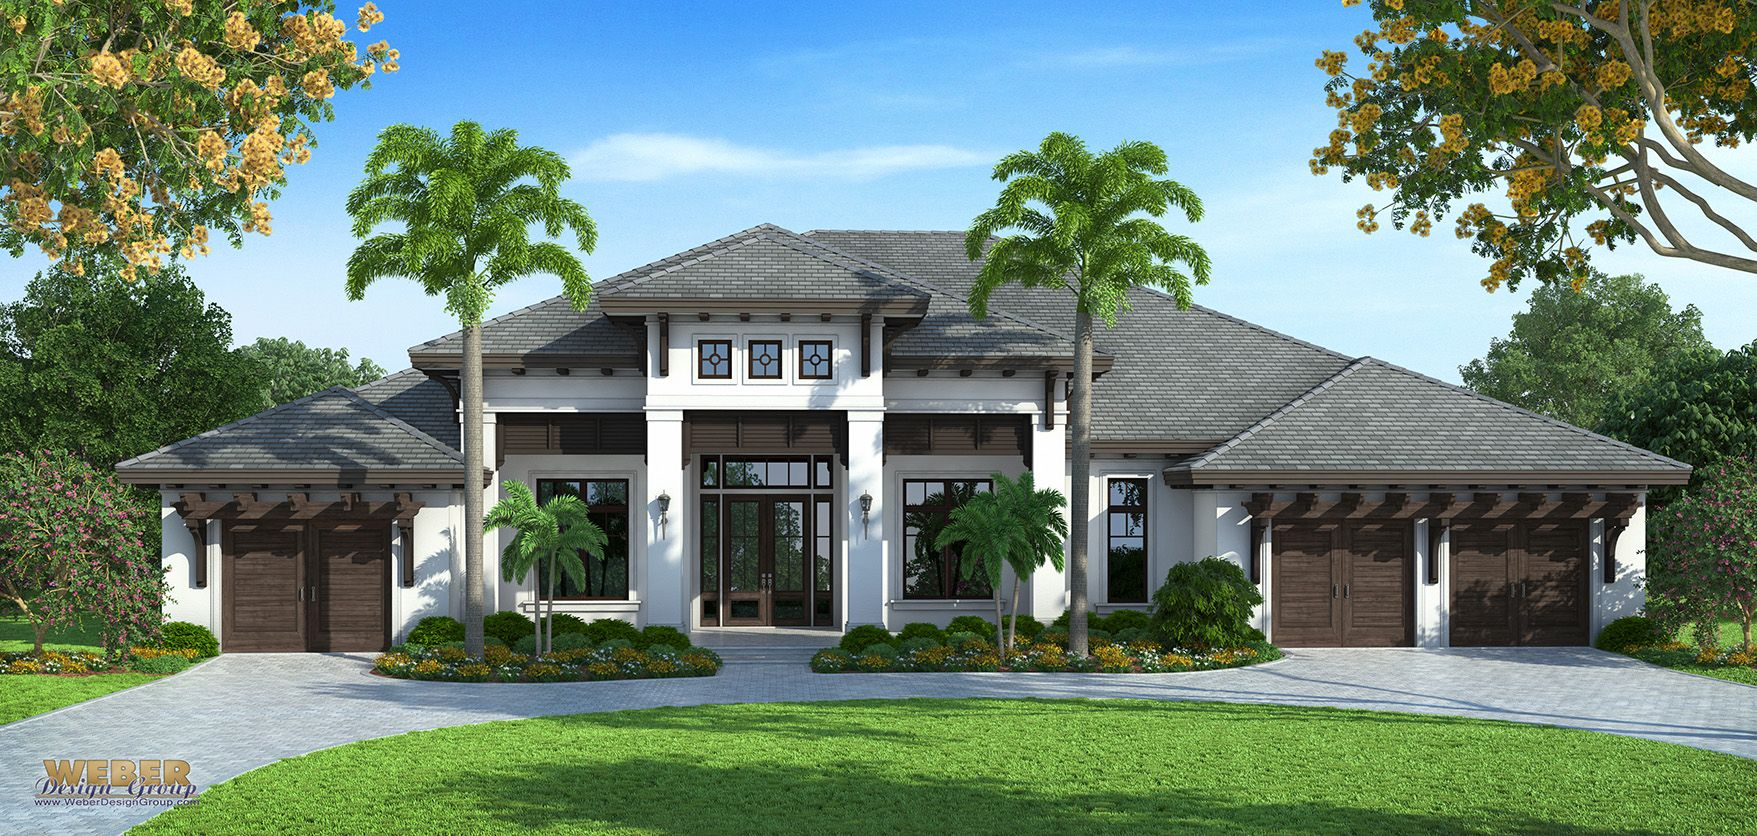 Transitional west indies style house plans by weber design for Florida house designs